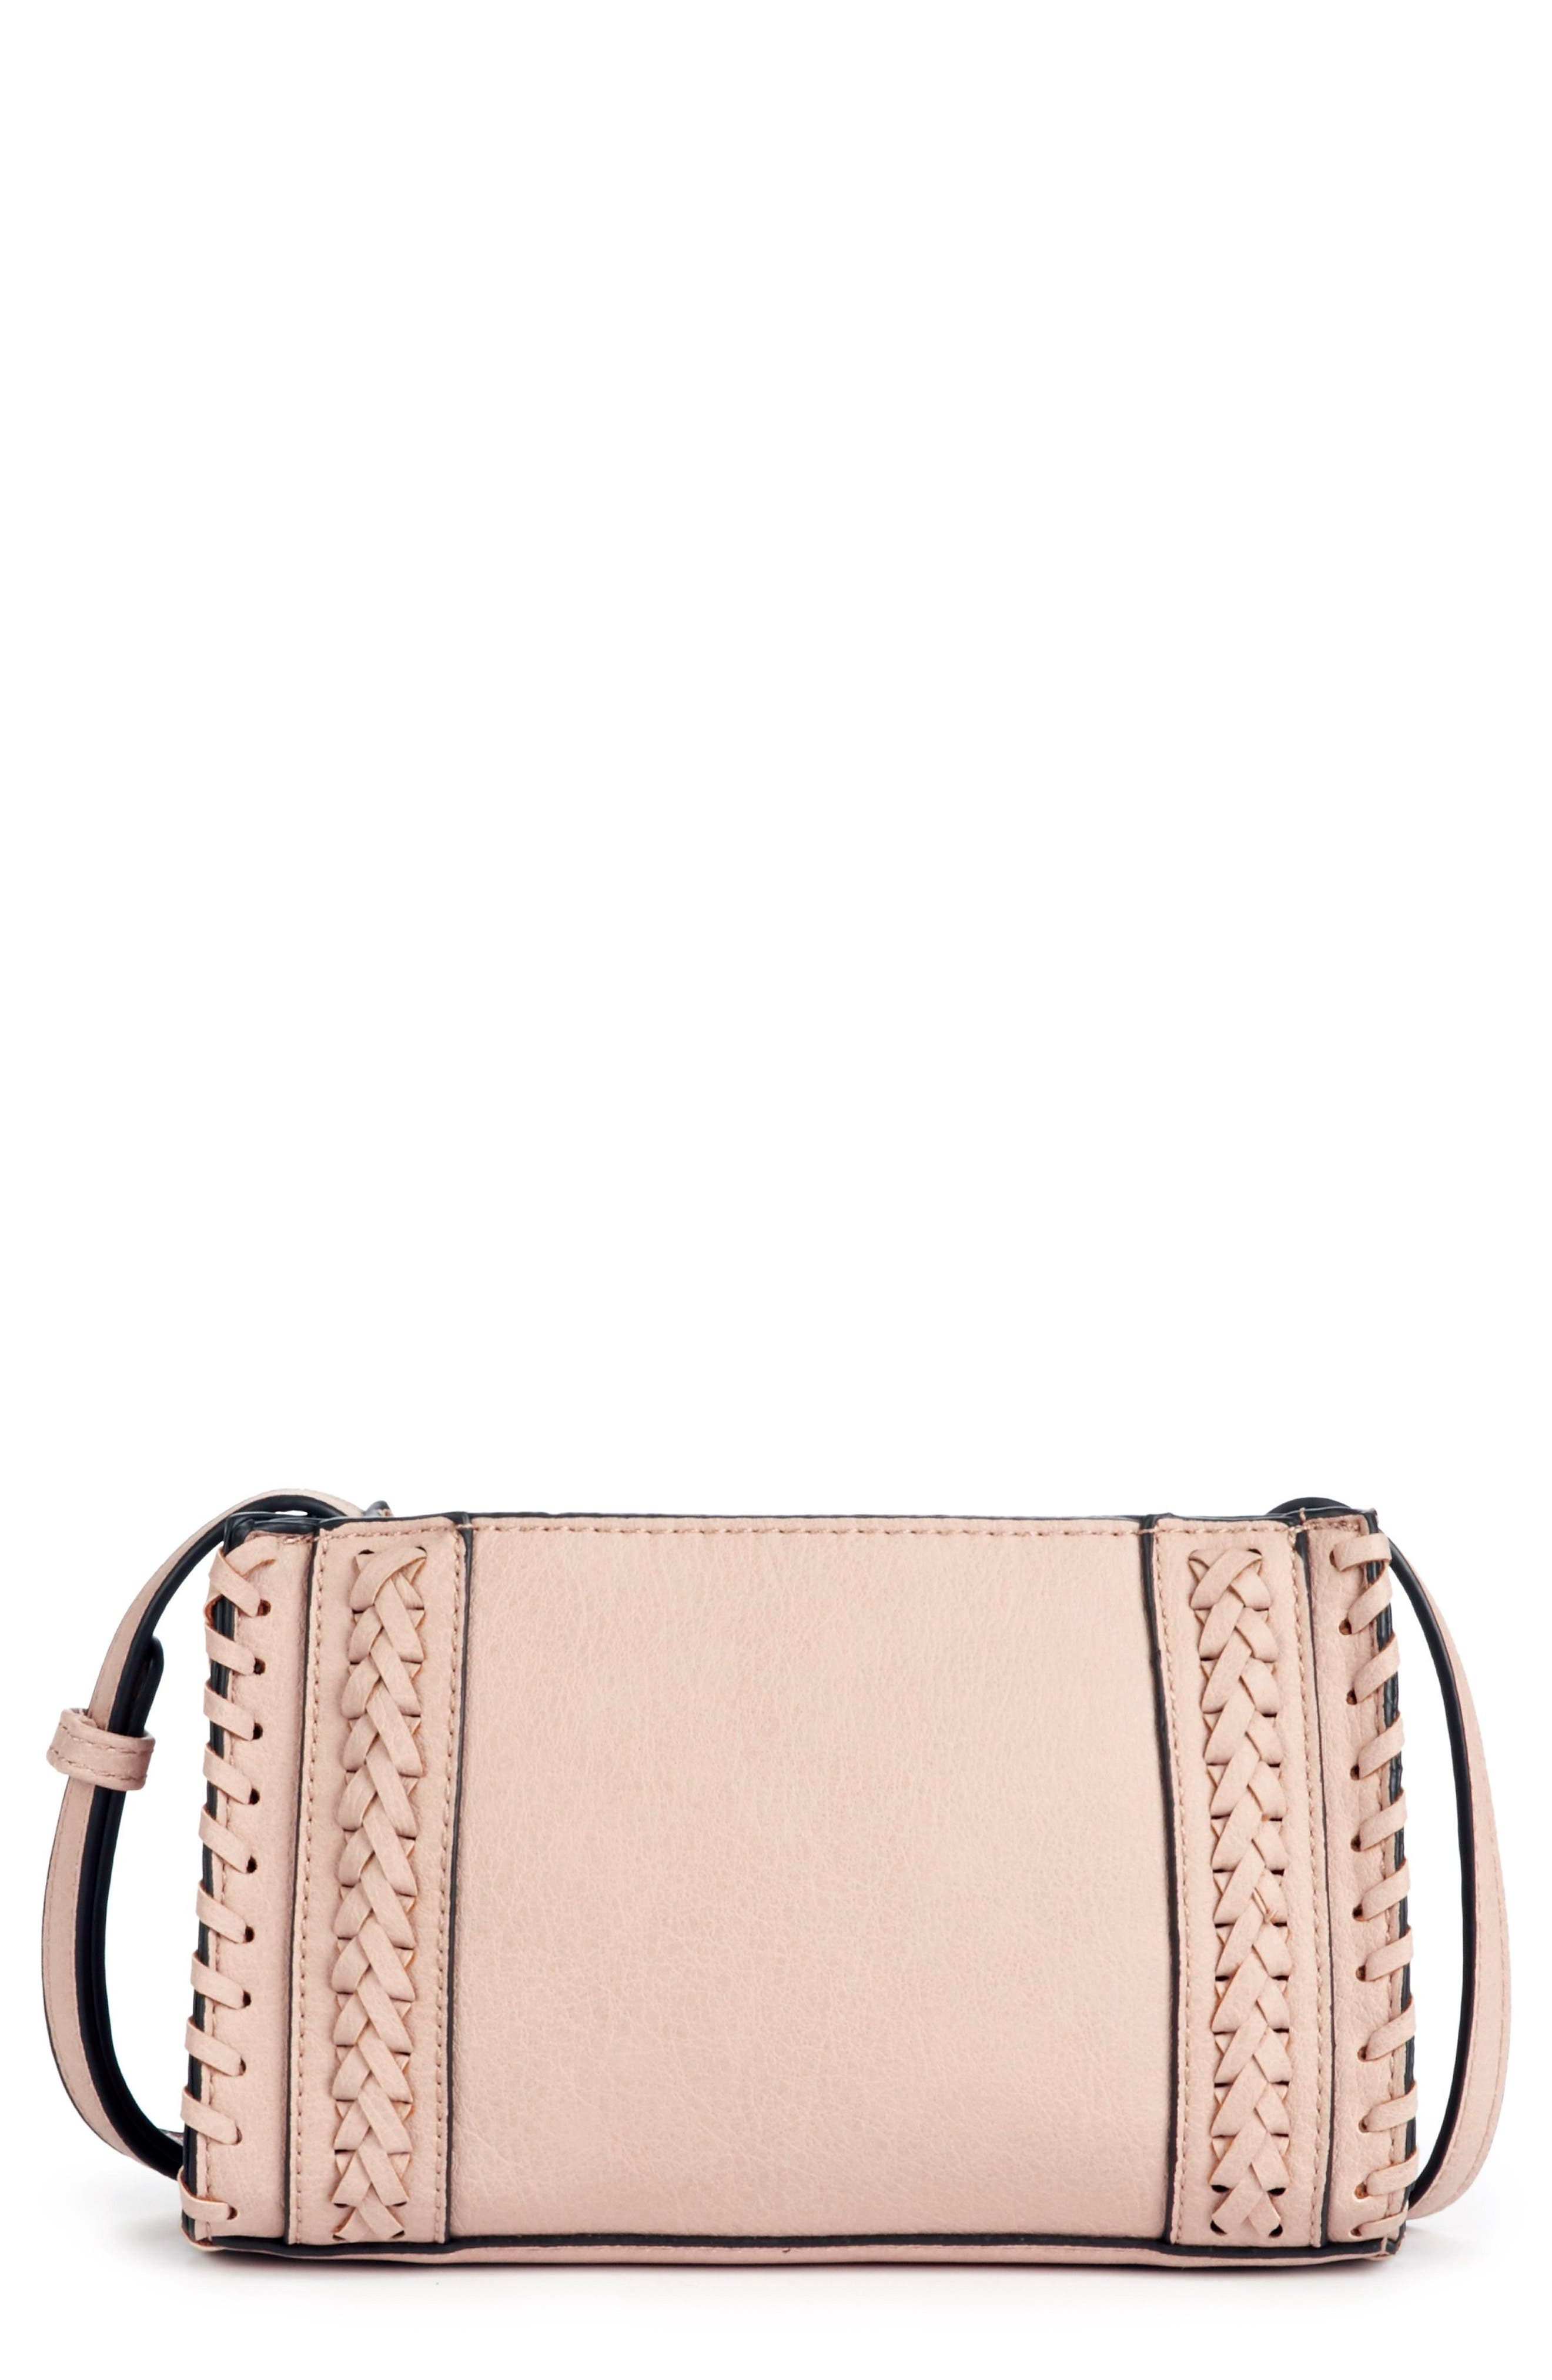 Sole Society Destin Faux Leather Crossbody Bag